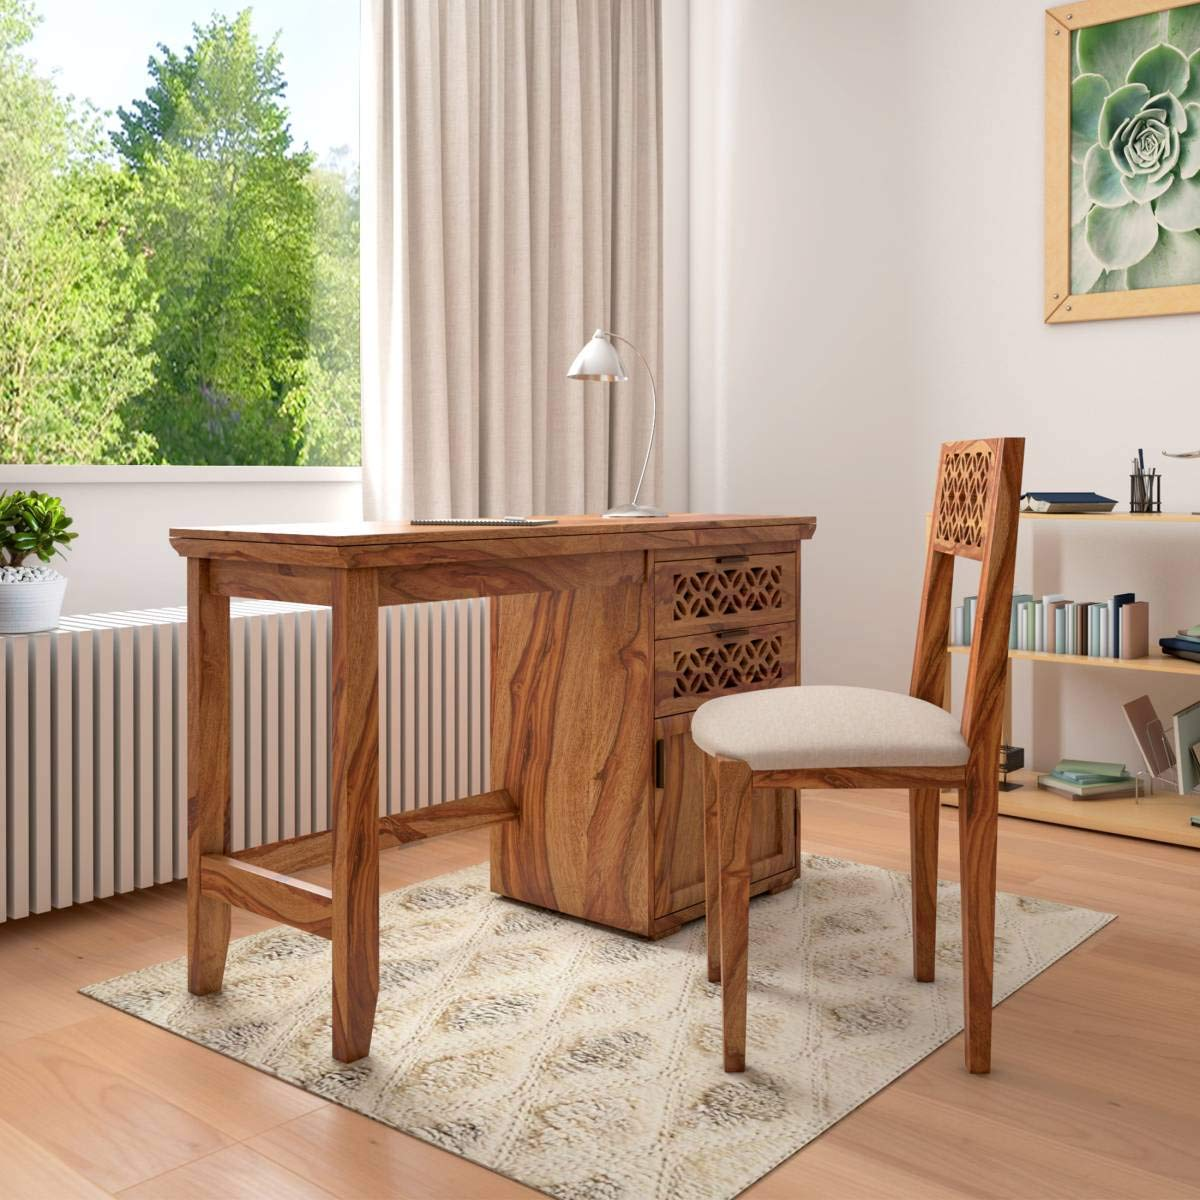 Jodhpur Wooden Study Table With Chair